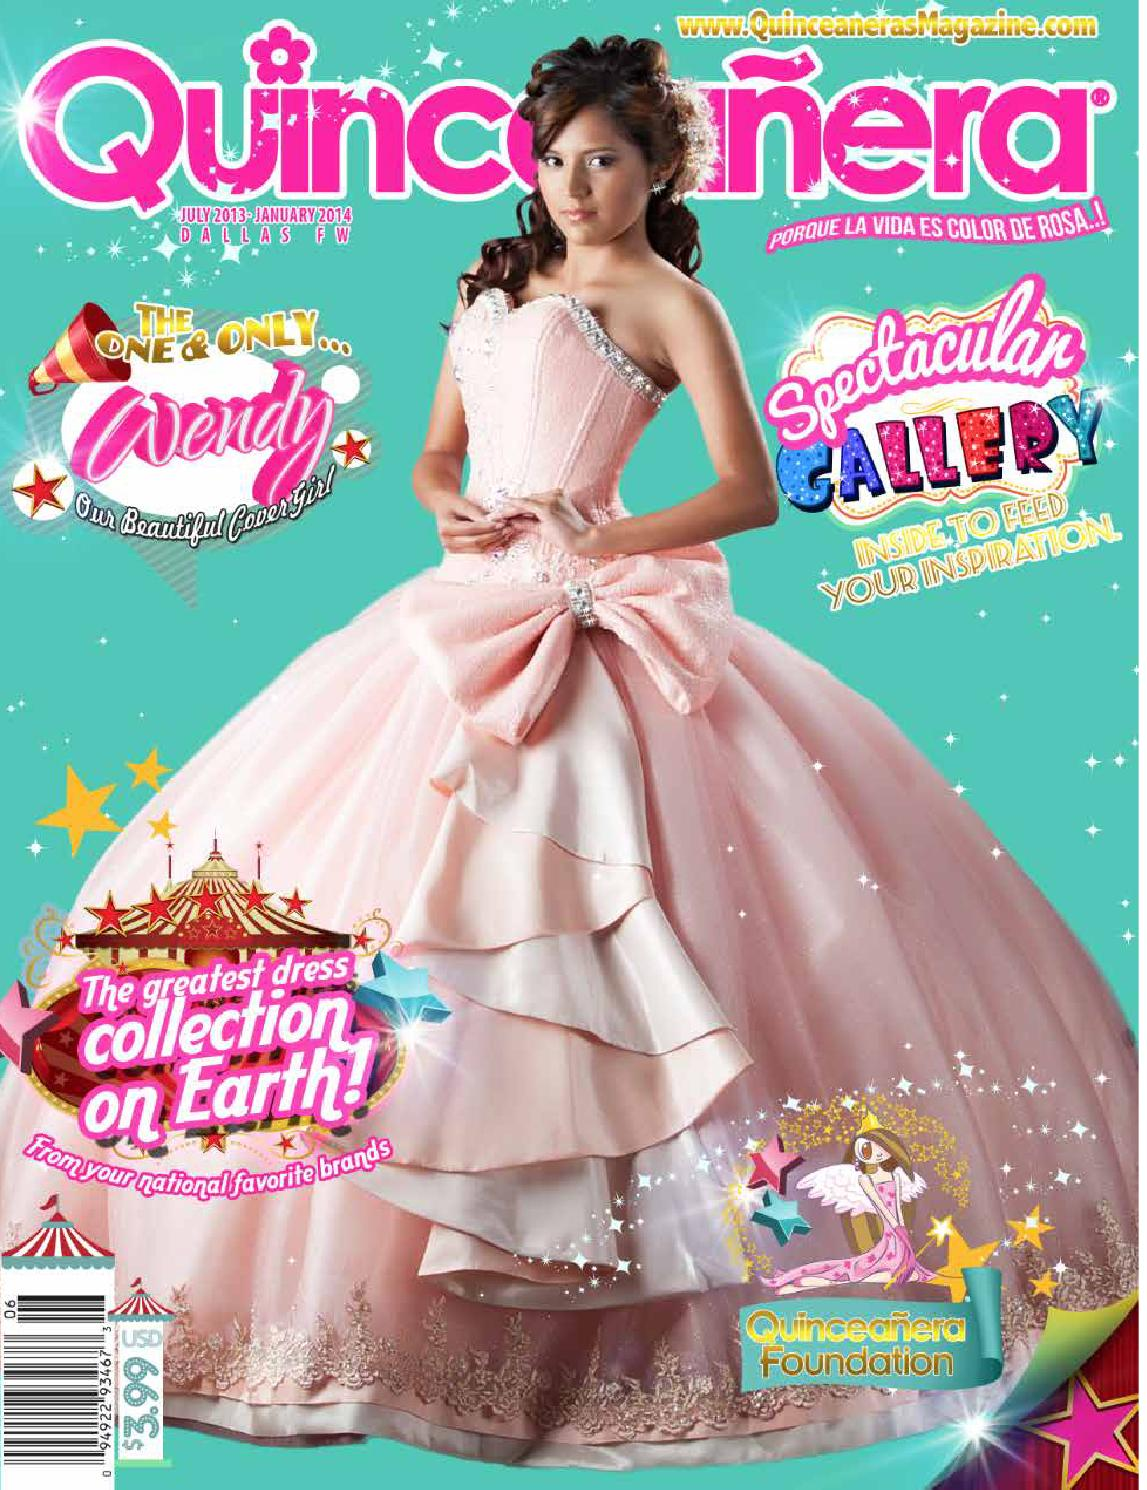 Dallas fortworth 2013 2 by Texas Quinceaneras Magazine - issuu